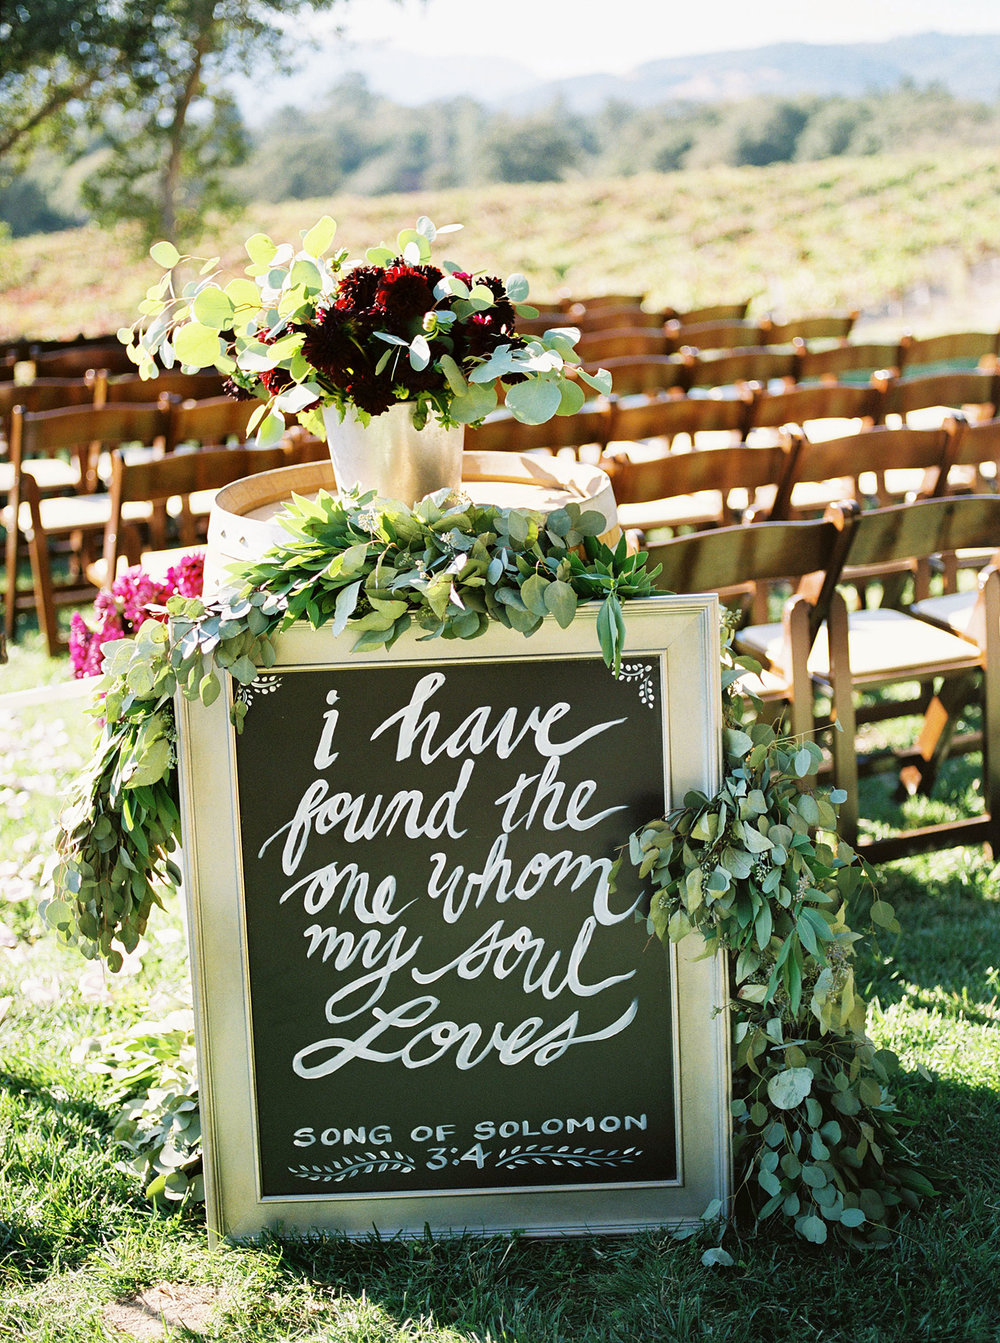 Gundlach-Bundschu-Wedding-Sign.jpg